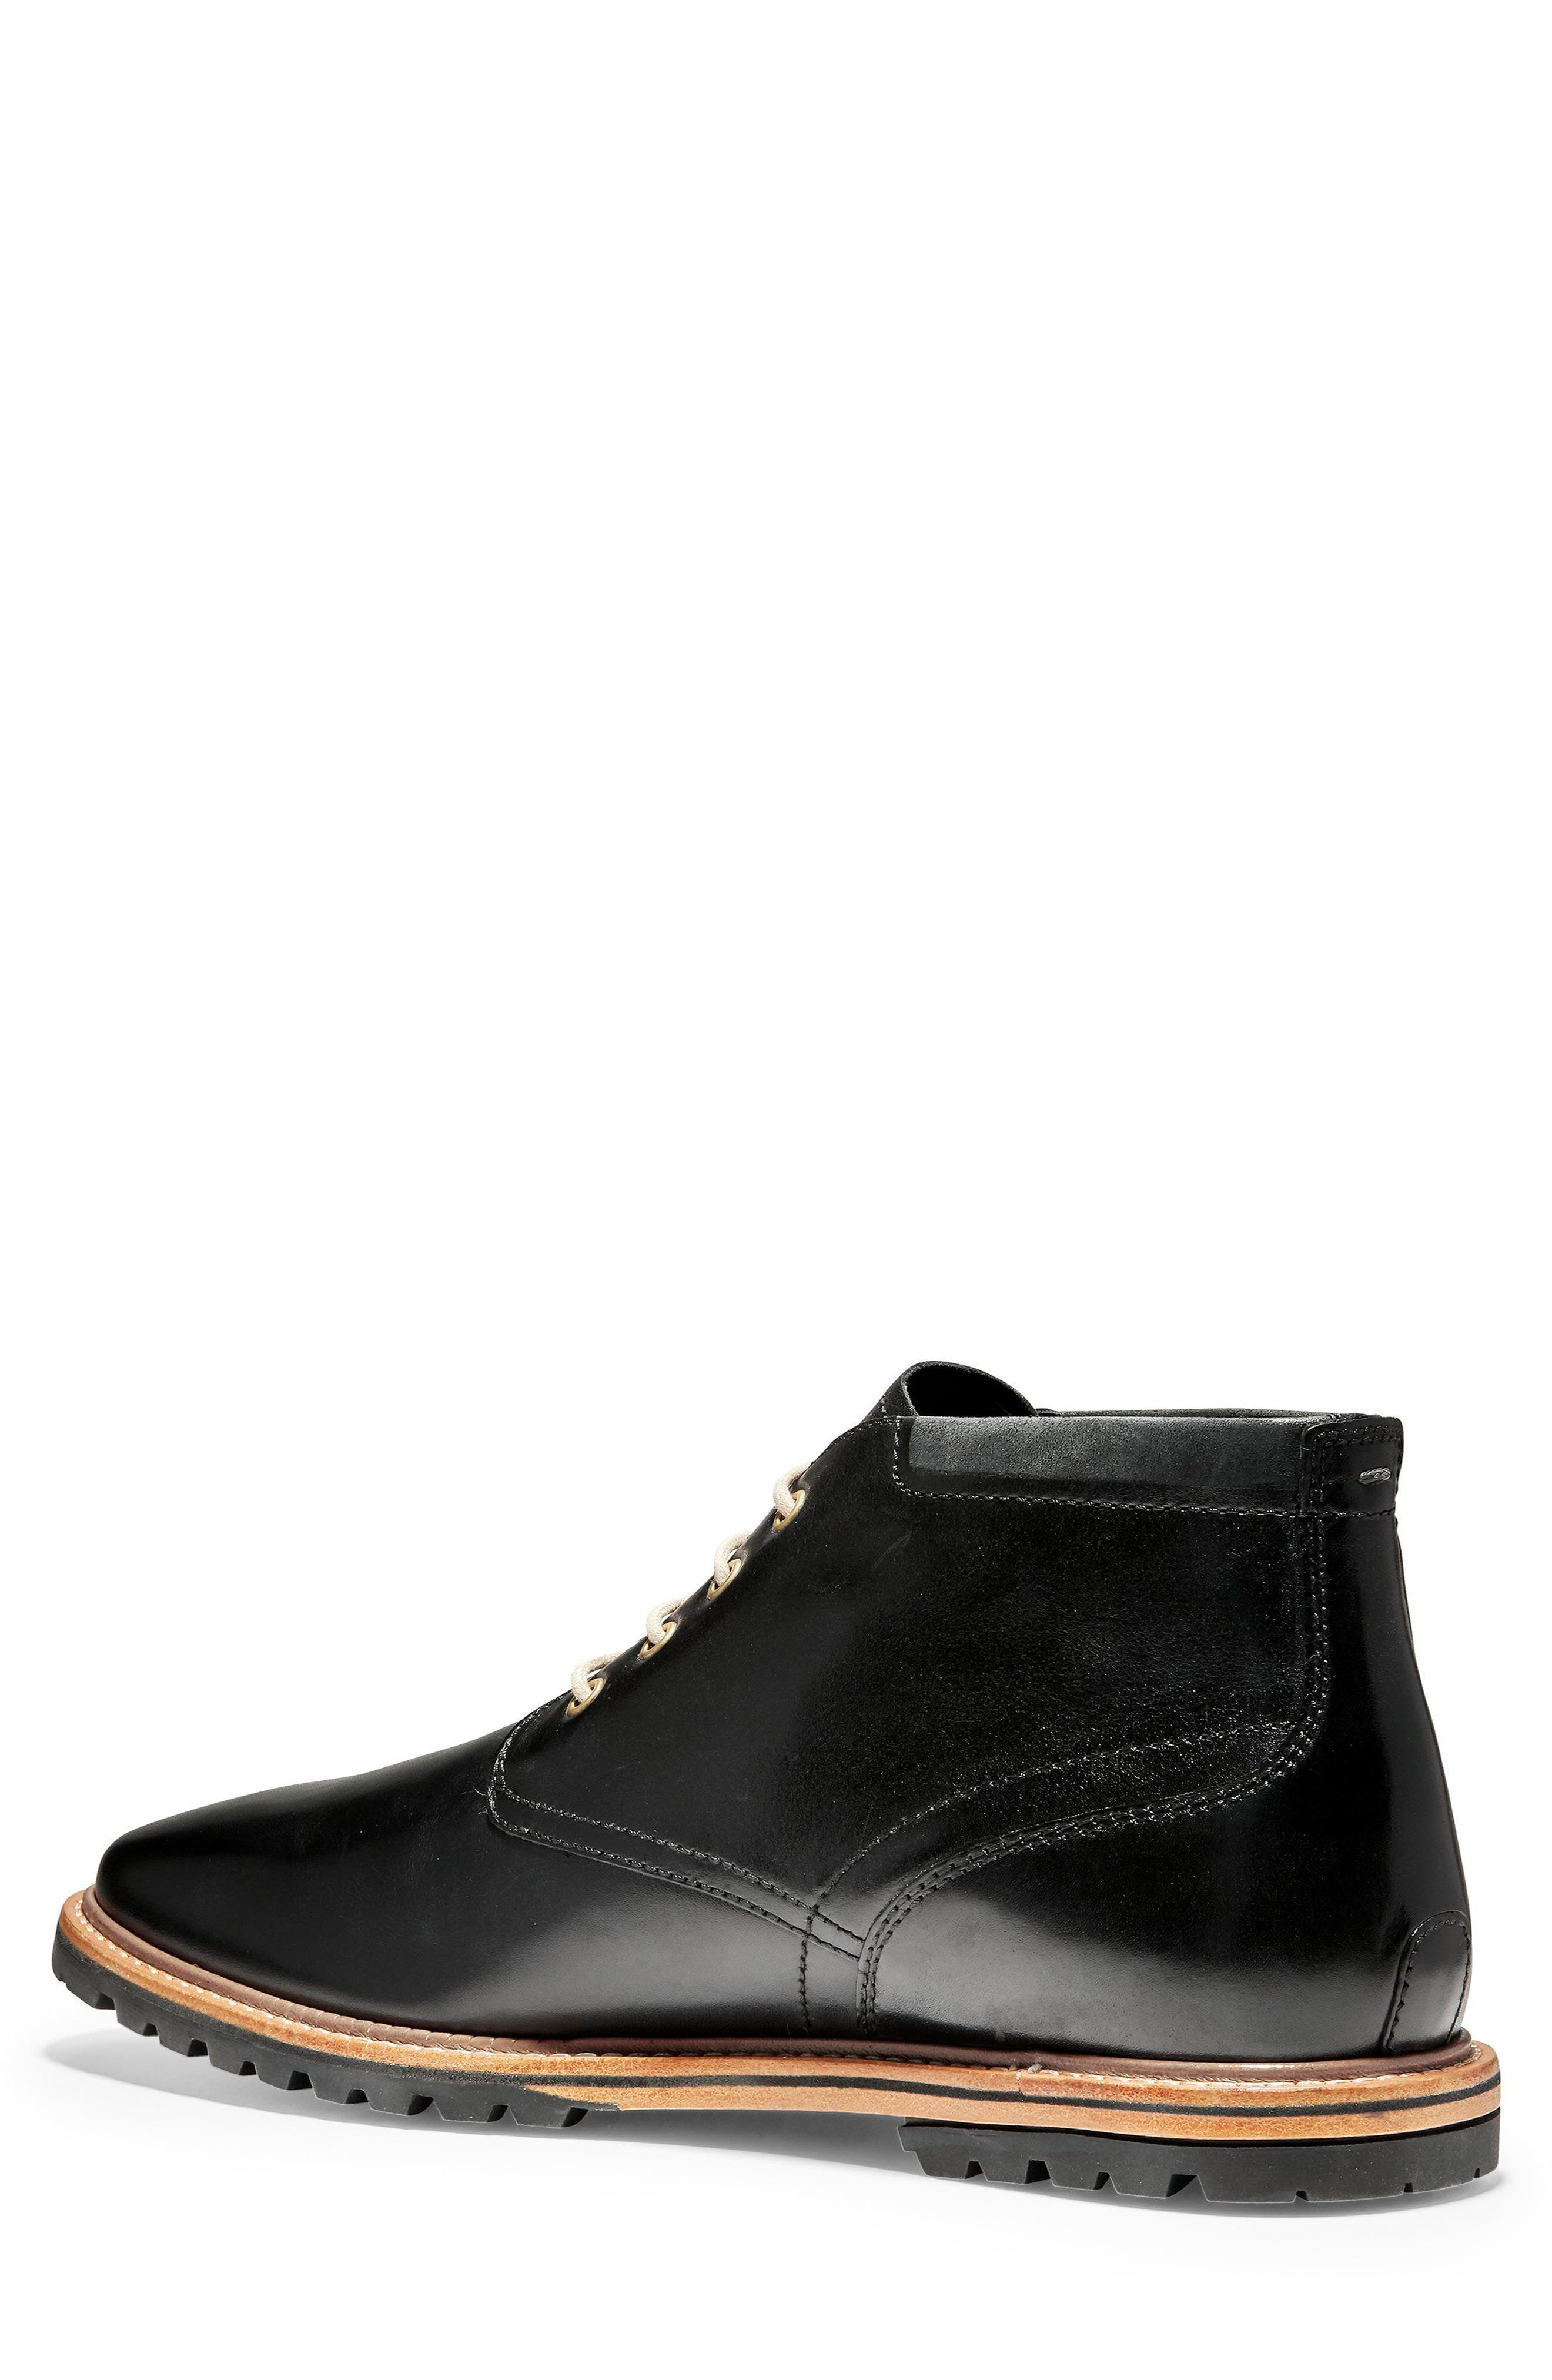 COLE HAAN, Raymond Grand Chukka Boot, Alternate thumbnail 2, color, BLACK LEATHER